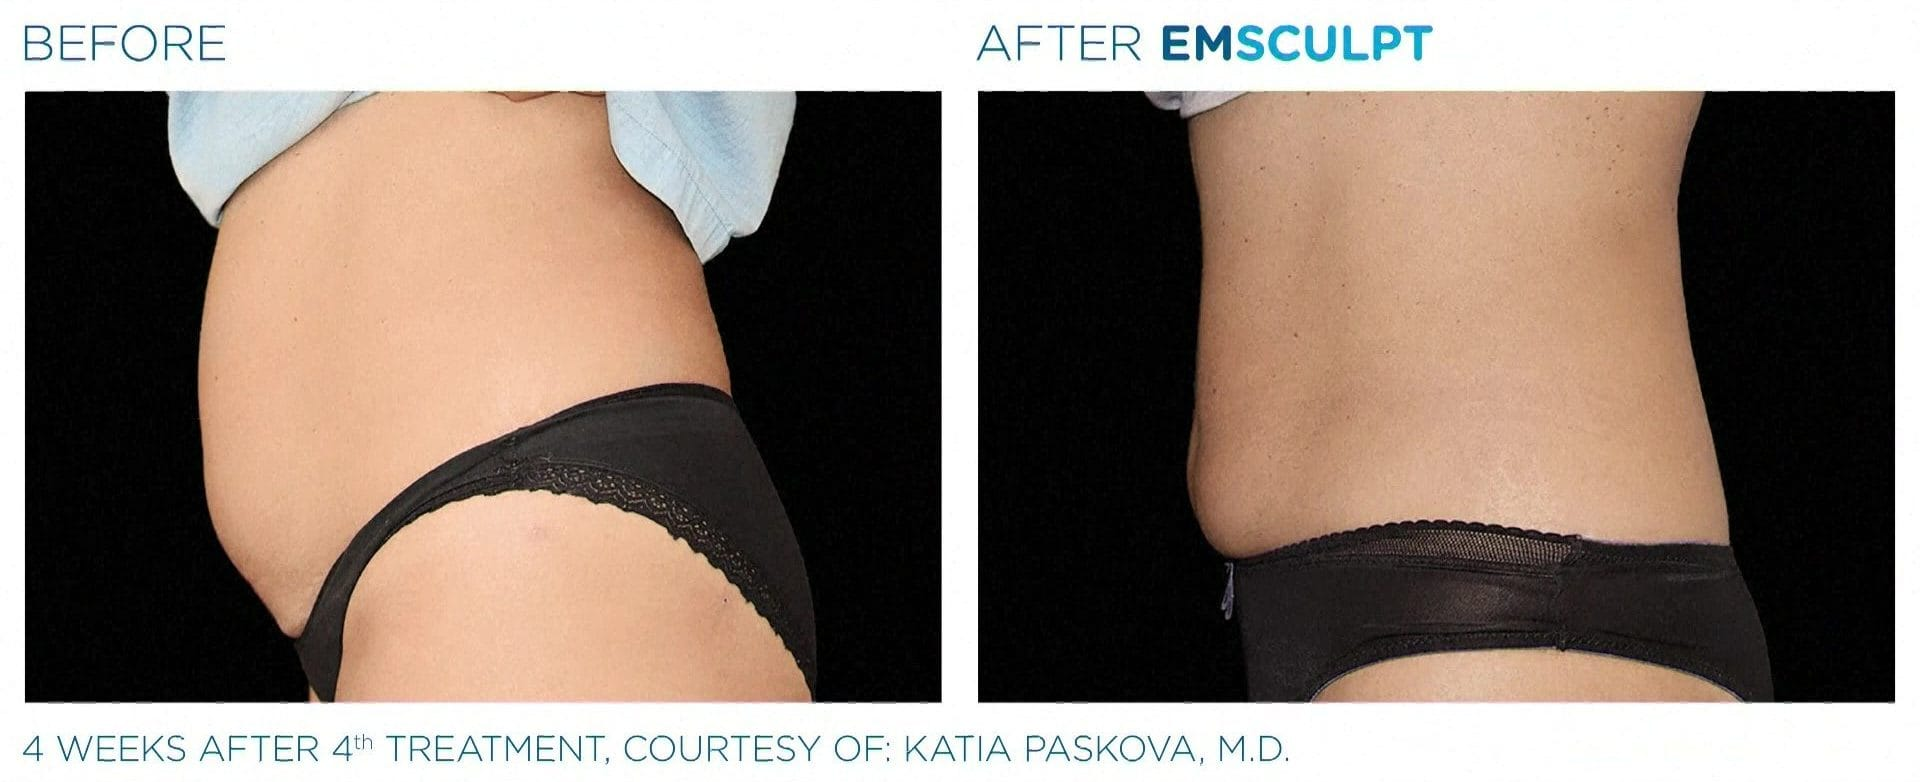 EMSCULPT before and after photos